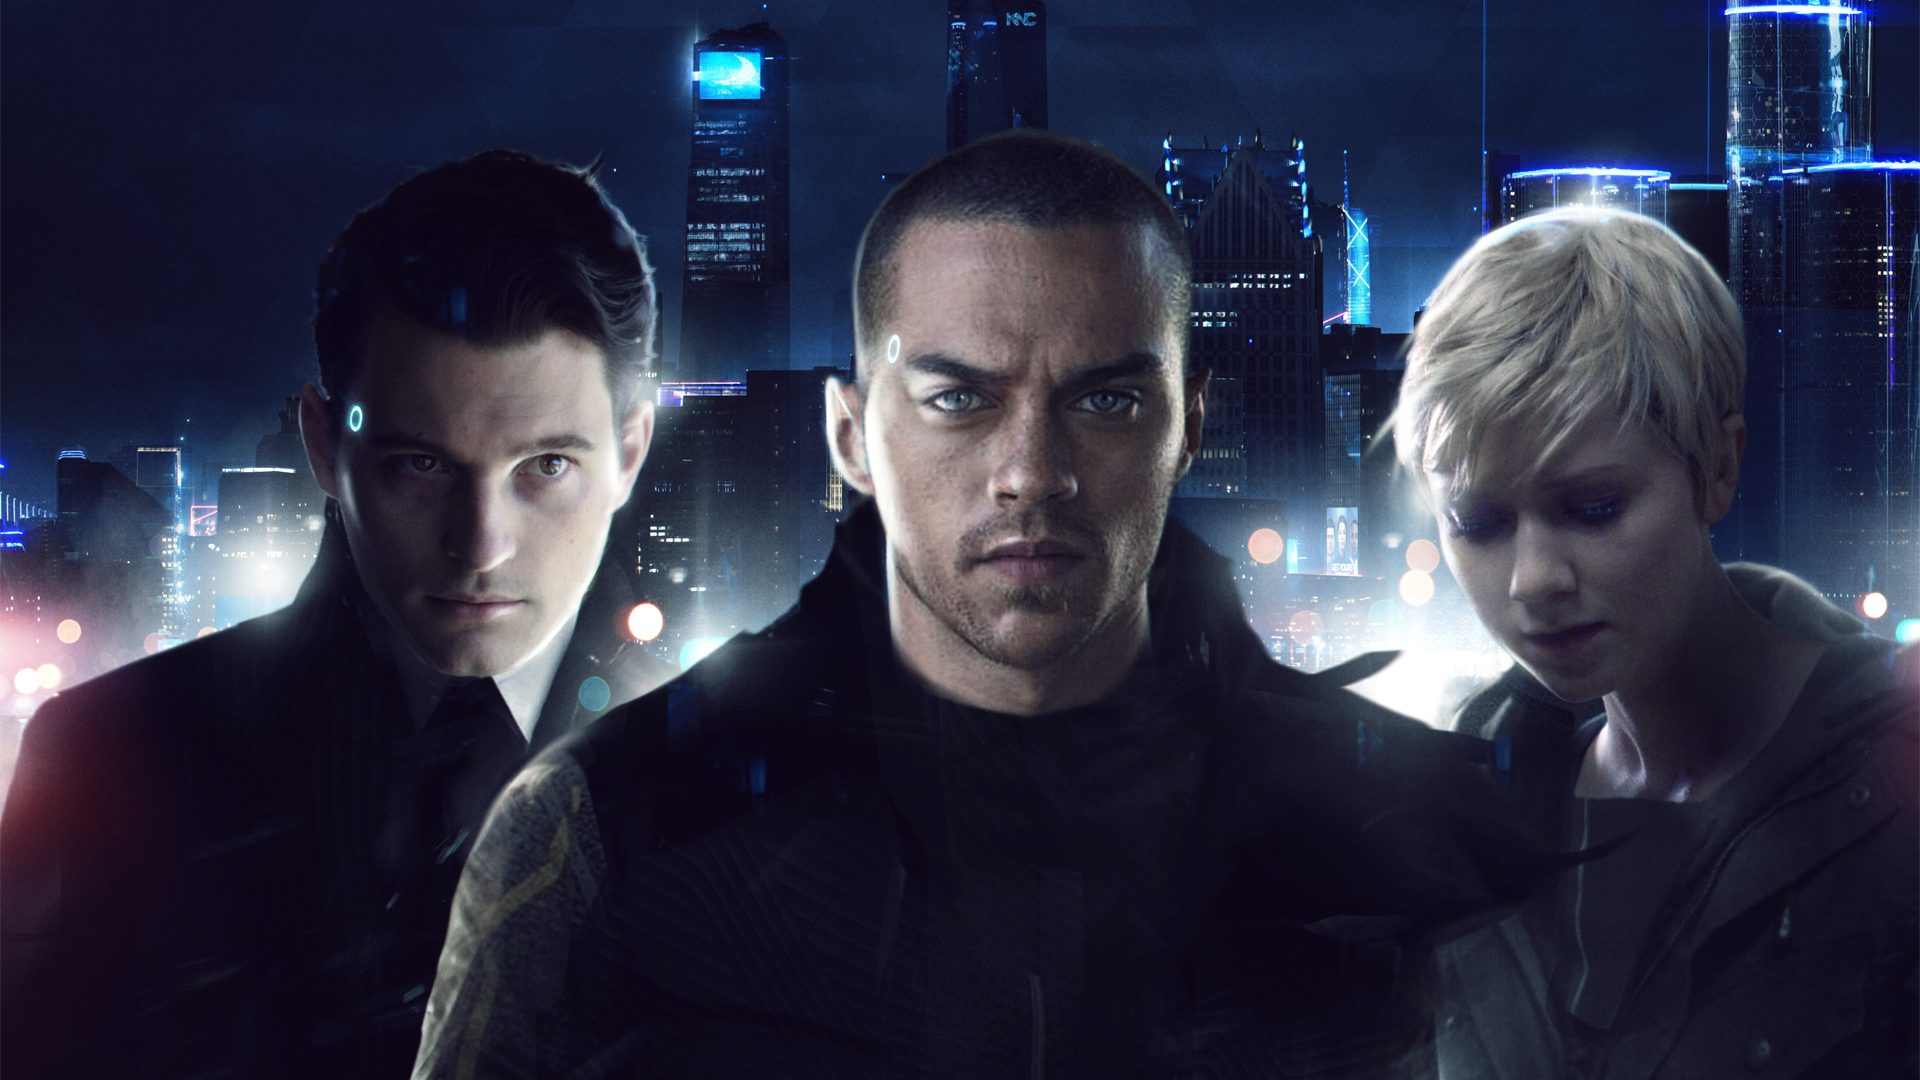 1600x900 Hd Wallpapers Cars Detroit Become Human 2018 Hd Games 4k Wallpapers Images